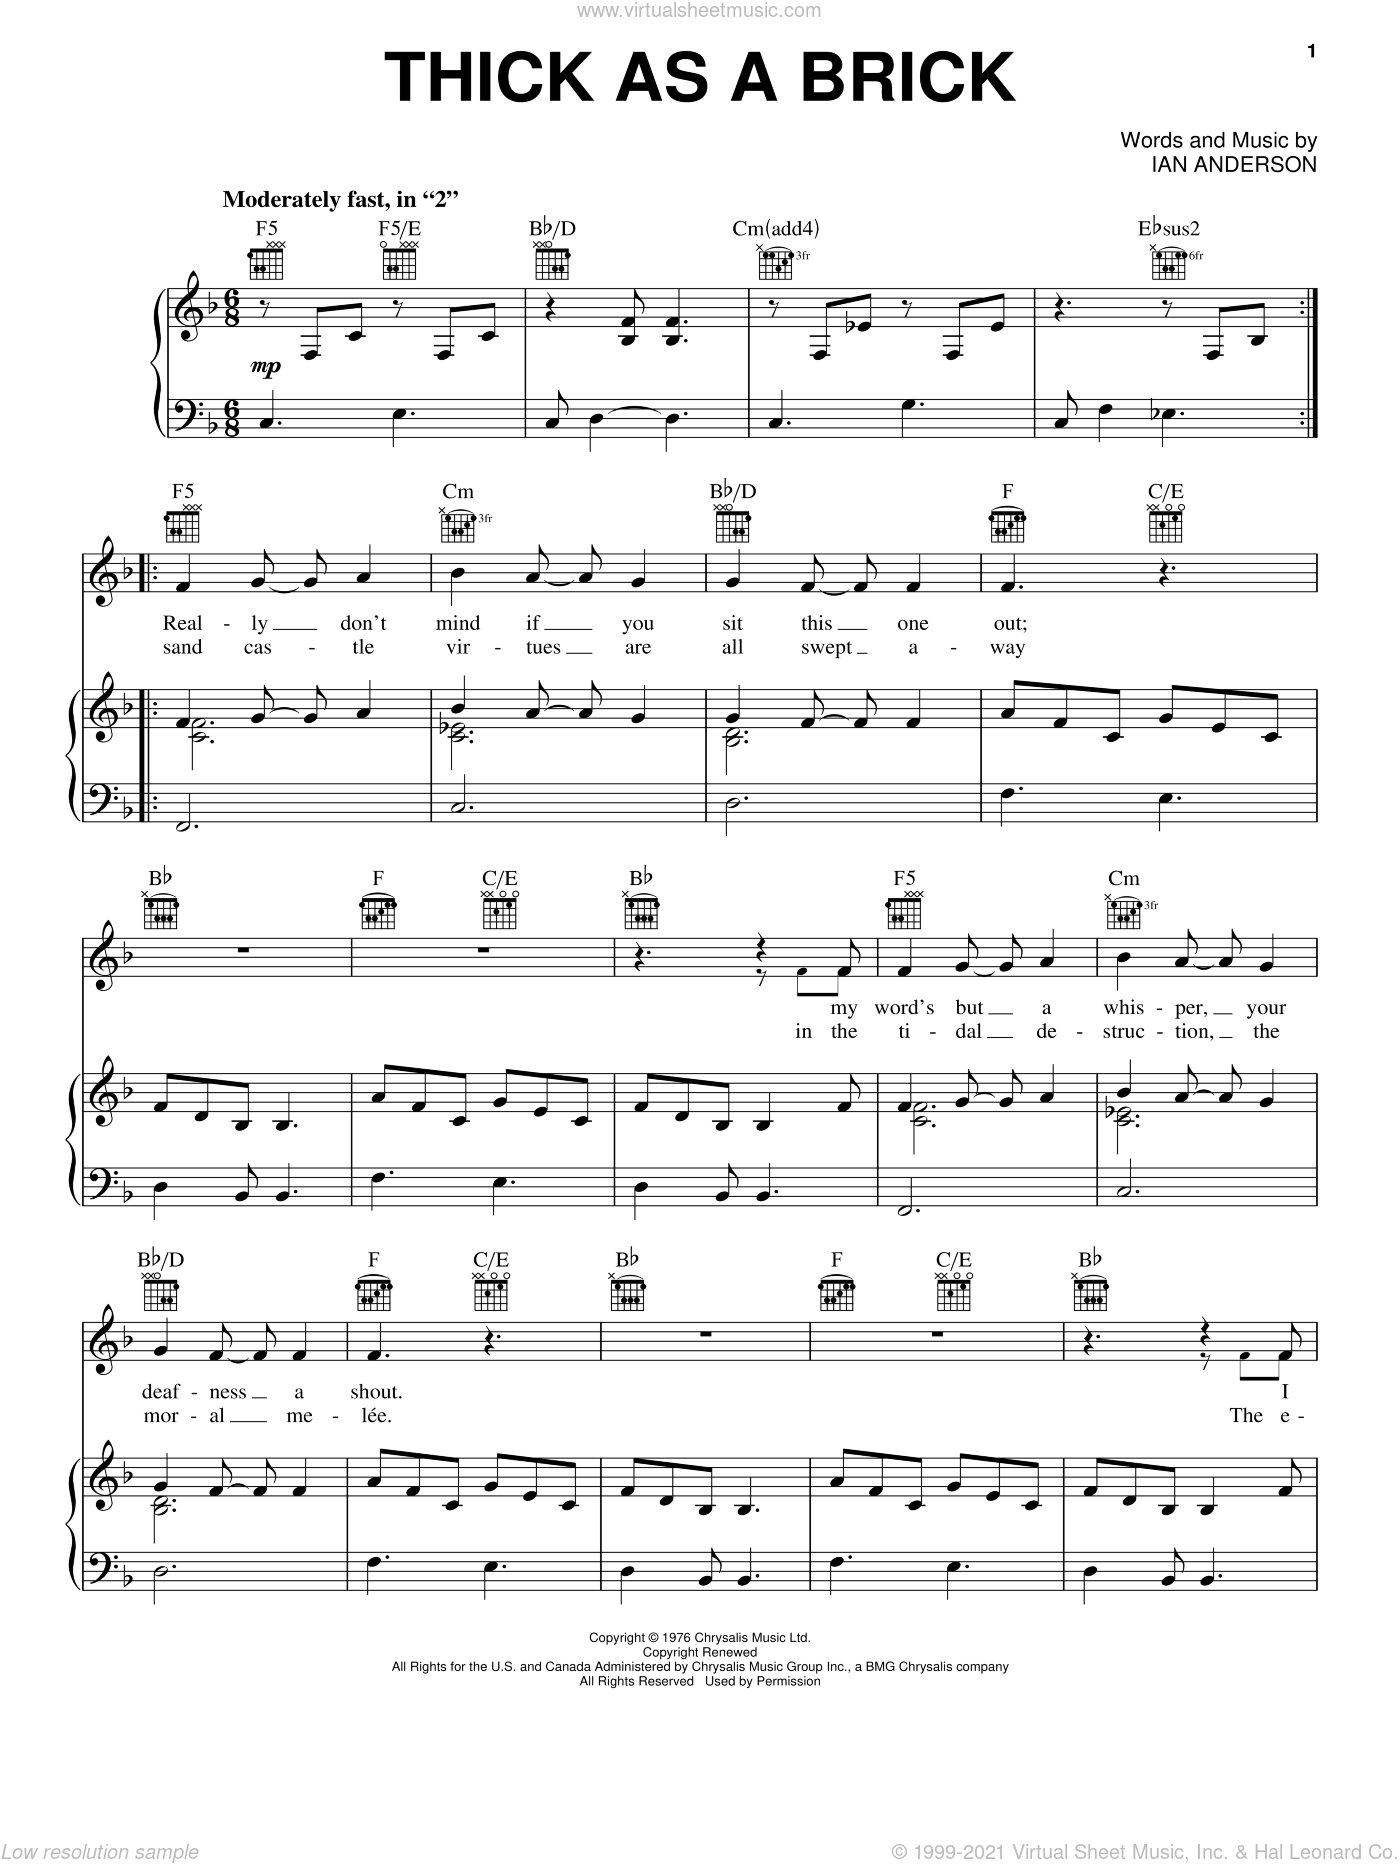 Thick As A Brick sheet music for voice, piano or guitar by Ian Anderson. Score Image Preview.